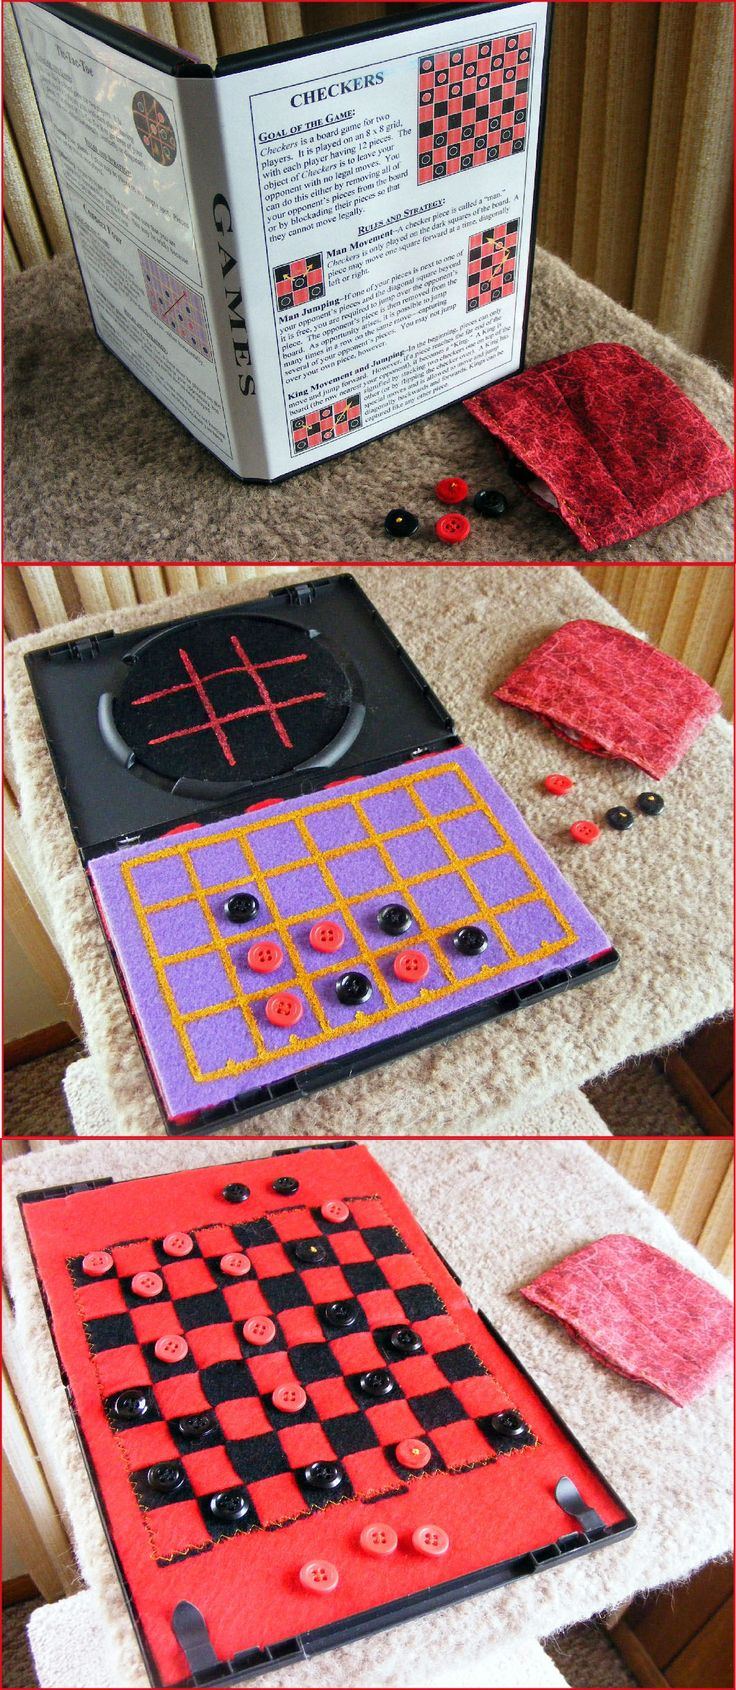 DVD Game Case--I wove black felt into red, sewed it & glued it to two pieces cut from back of memo pad; then glued one side into case. I cut out the very center of circle, glued in black felt & painted Tic-Tac-Toe. I painted Connect Four on a felt piece & glued it to the other side of the checker board.  Checkers are buttons sewed to felt (which may not have been necessary). I sewed checker pouch which sits in the Tic-Tac-Toe area when closed. I printed off instructions for cover.